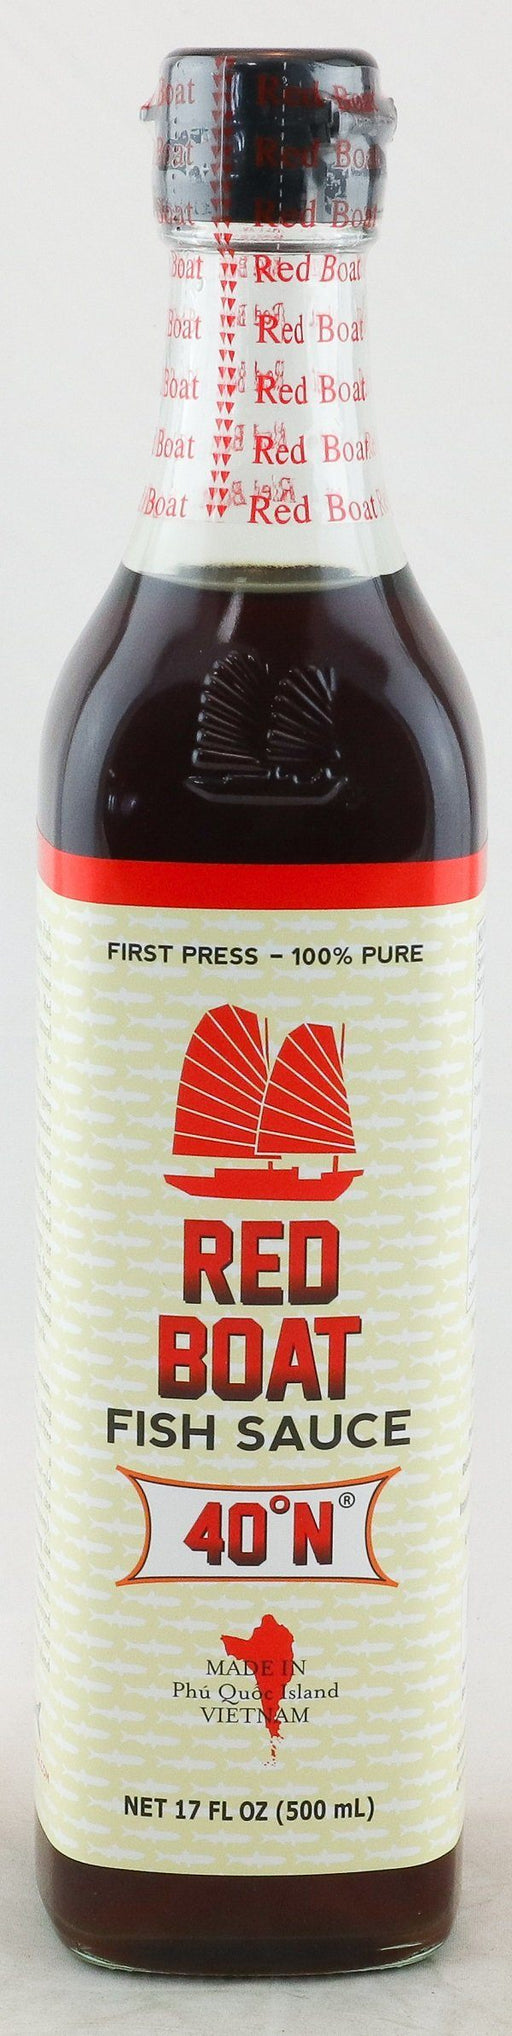 Red Boat Fish Sauce 40 N 500ml - Yin Yam - Asian Grocery